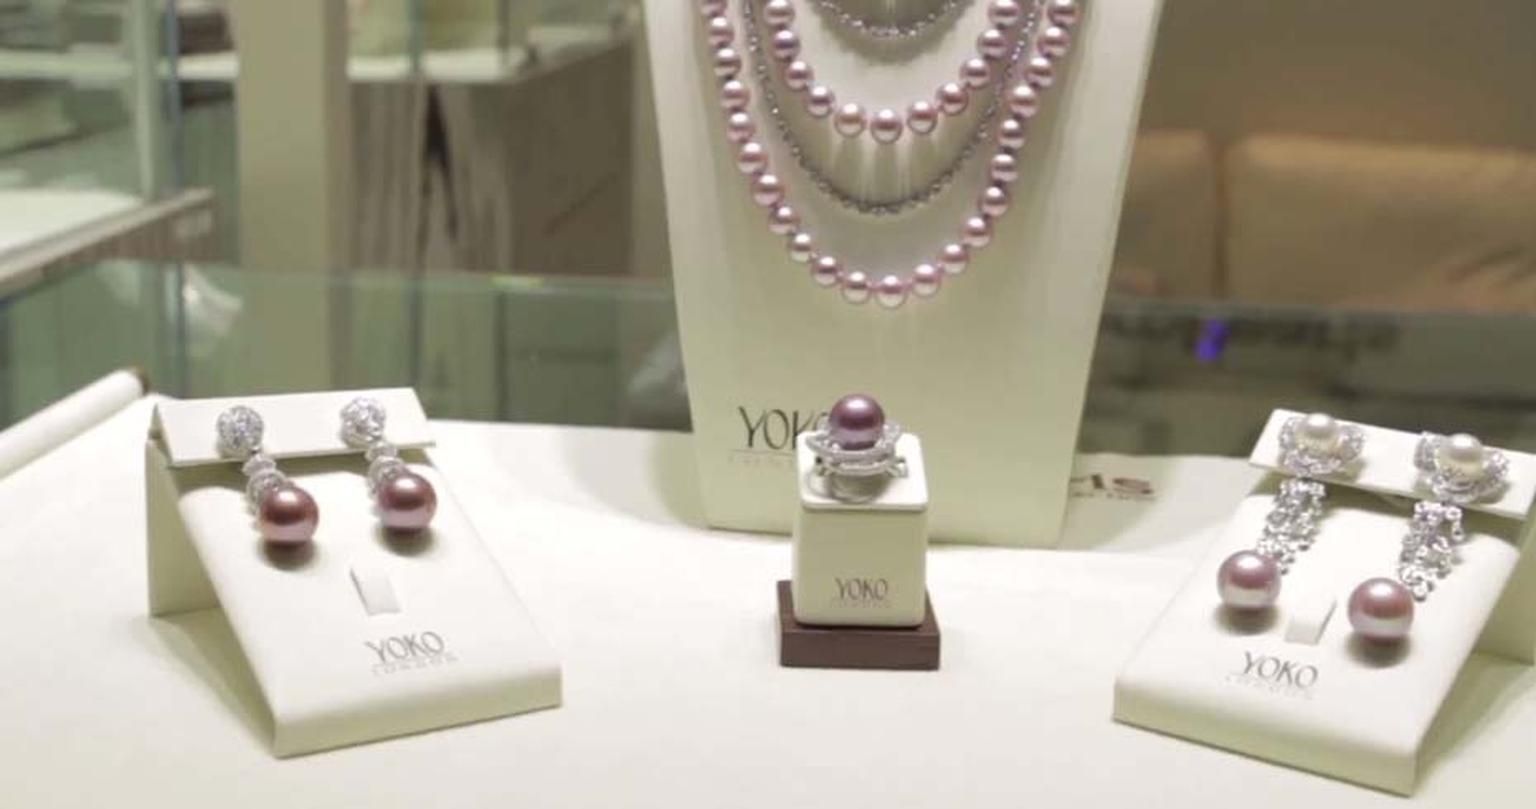 Yoko pearl necklace, earrings and bracelet.